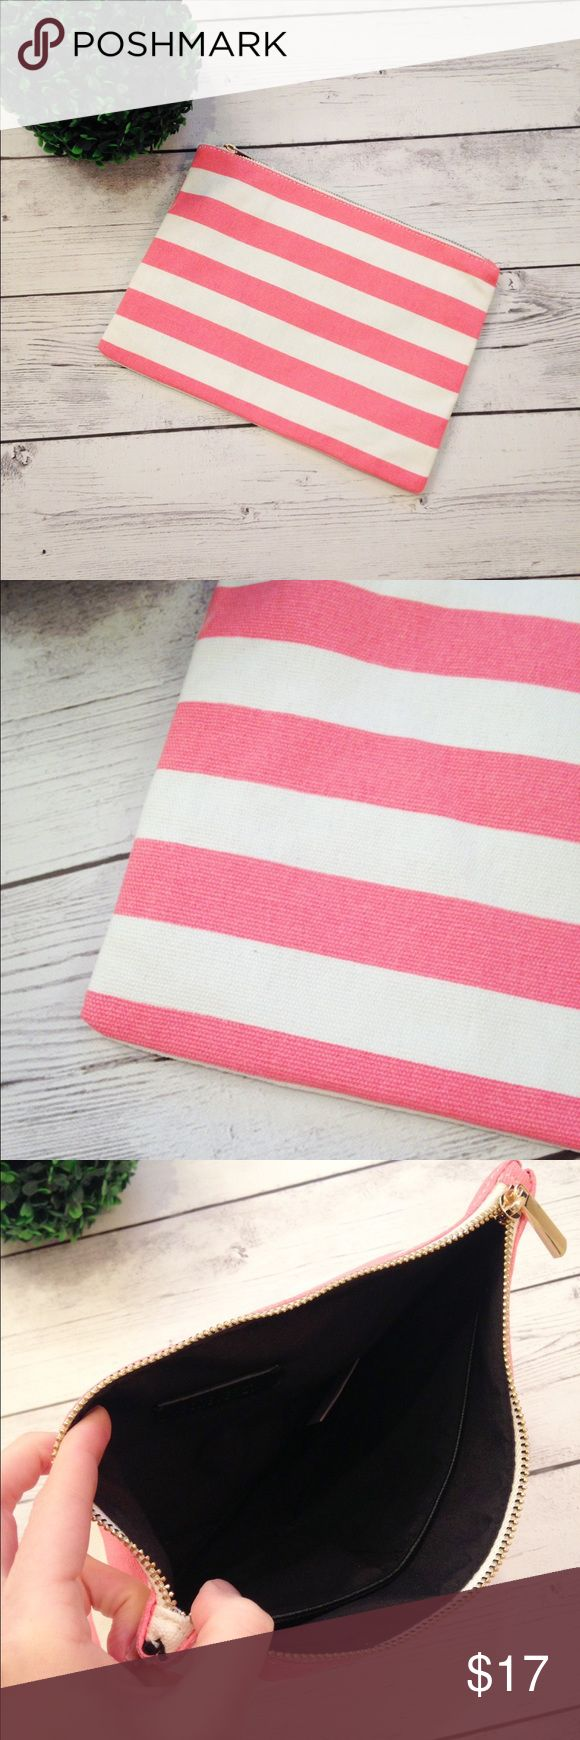 "NWOT Pink And White Striped Clutch NWOT. Adorable pink and white striped clutch from Forever 21. Never been used. Approximately 11"" long and 8"" tall. Zip closure. Inside has 2 open style pockets. Canvas. From a smoke-free, pet-free building. *Stripes may appear a little brighter in person. Forever 21 Bags Clutches & Wristlets"